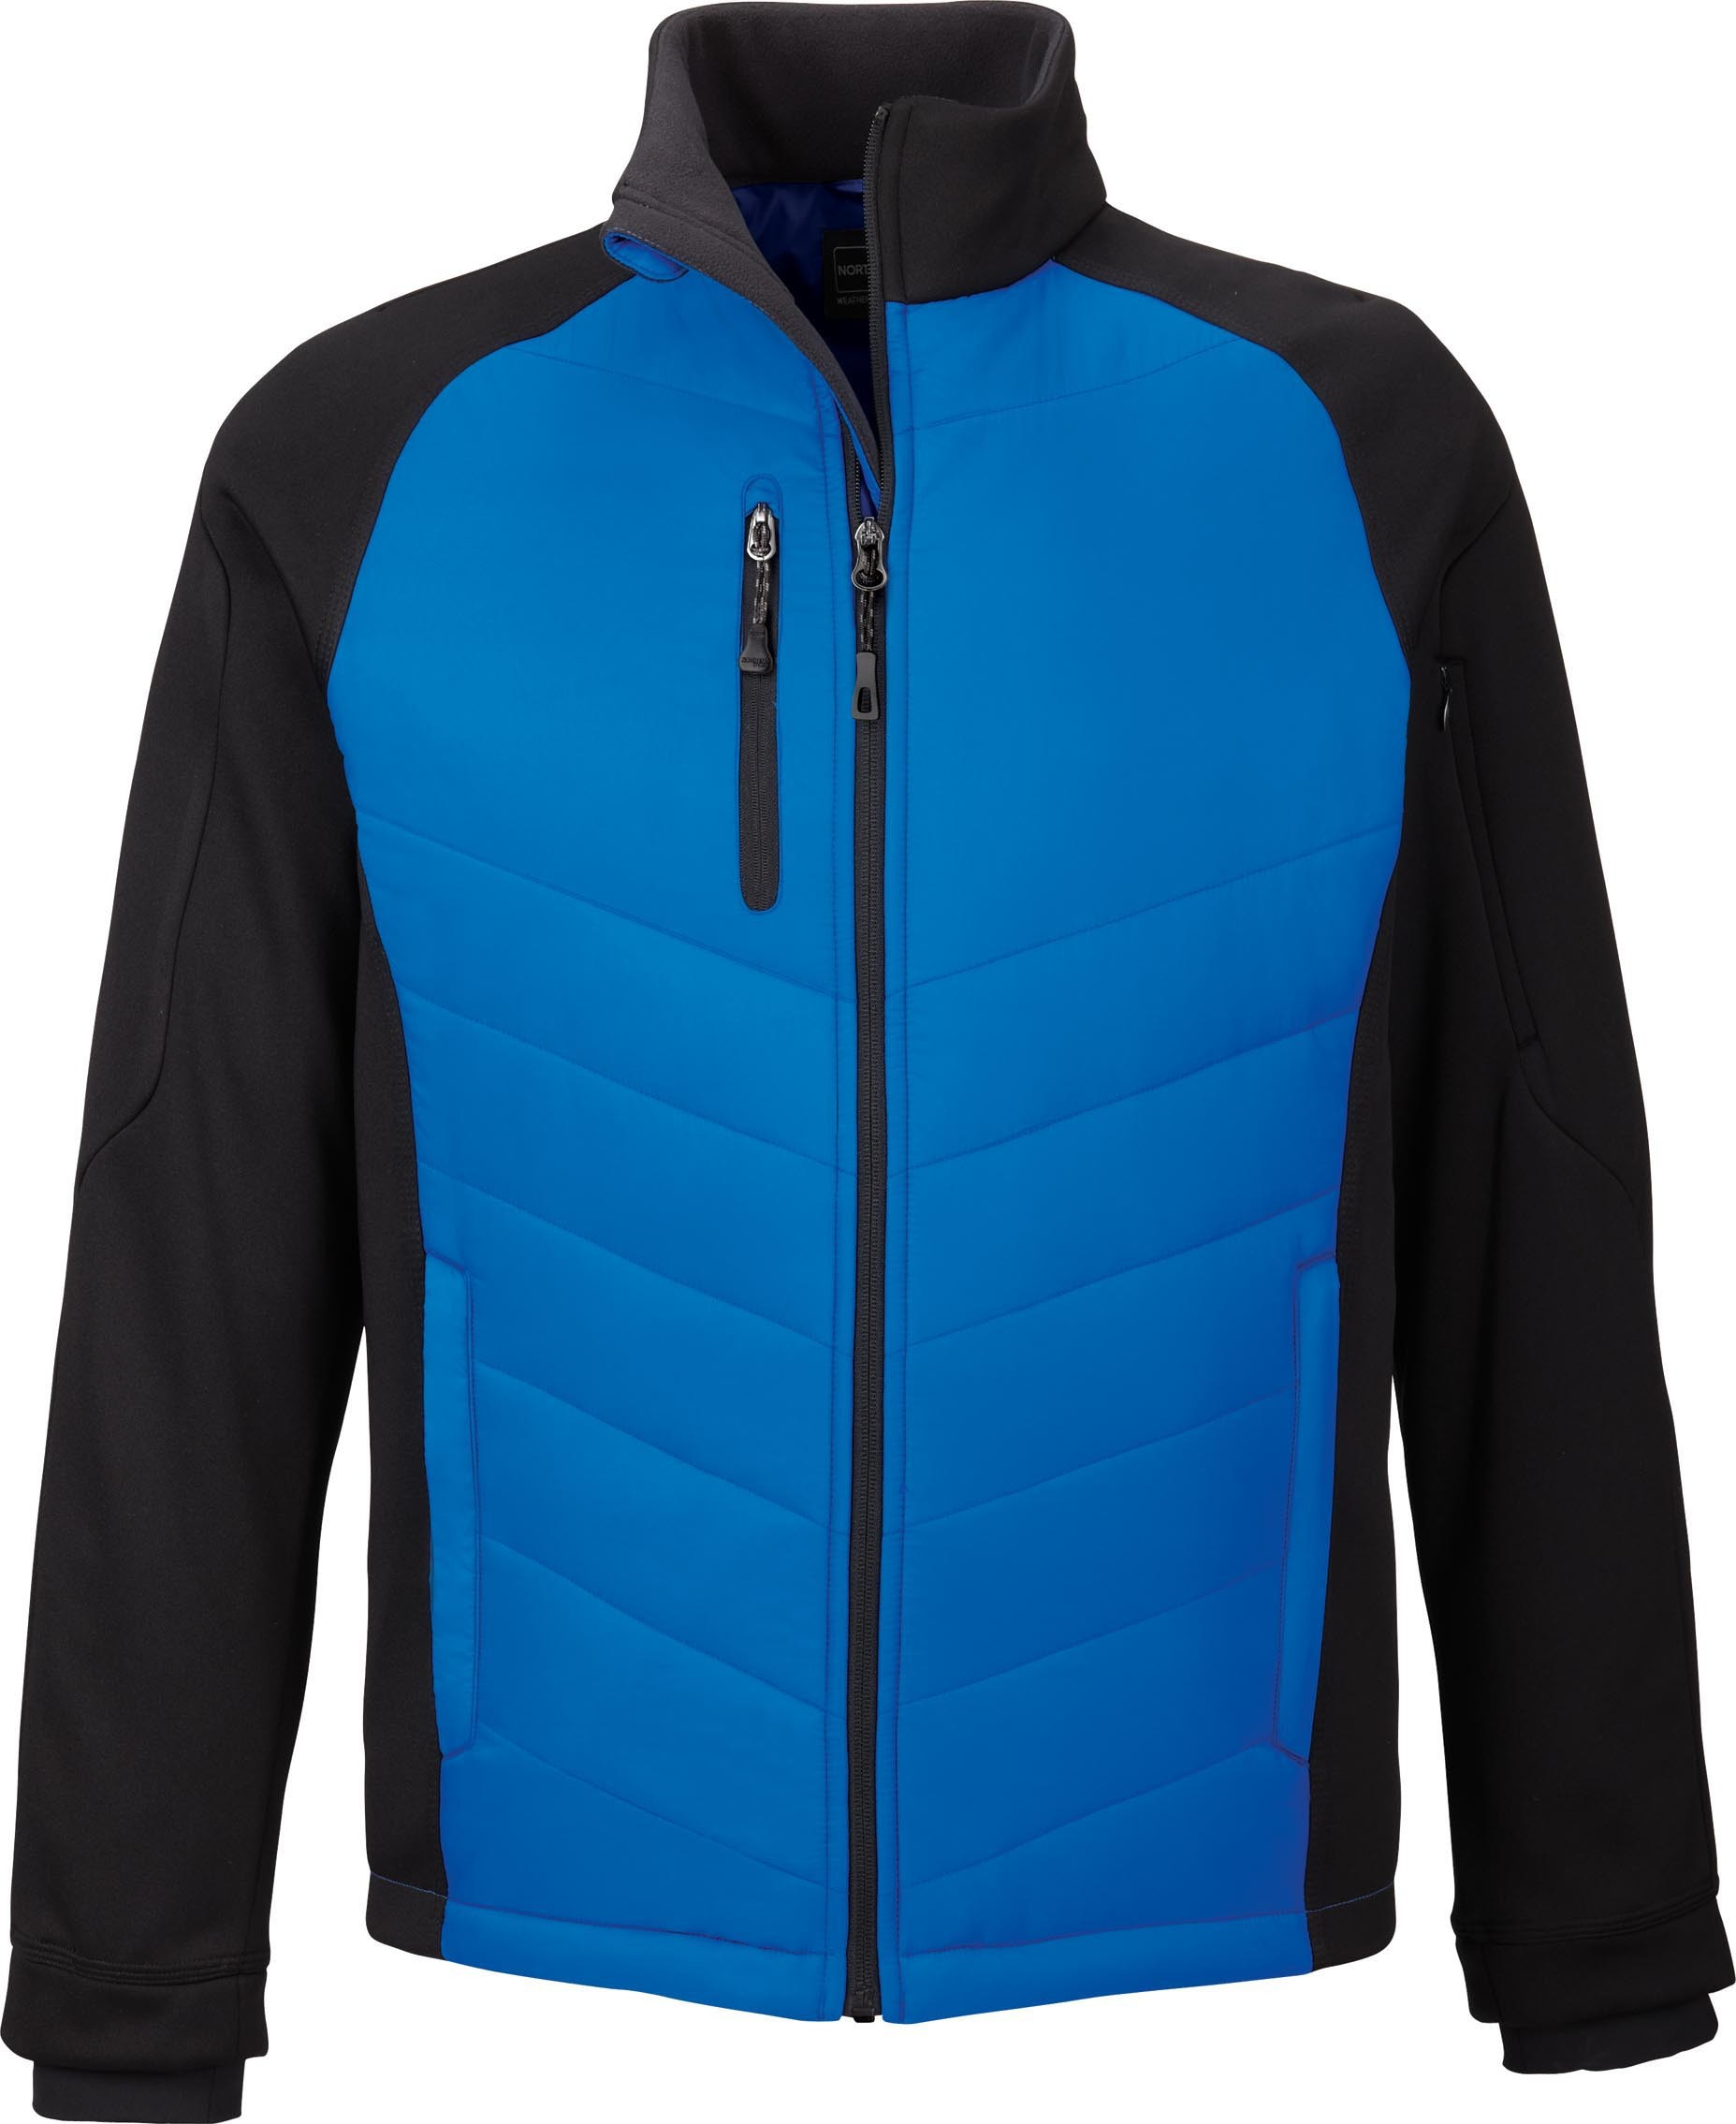 Ash City UTK 1 Warm.Logik 88662 - Epic Men's Insulated Hybrid Bonded Fleece Jacket